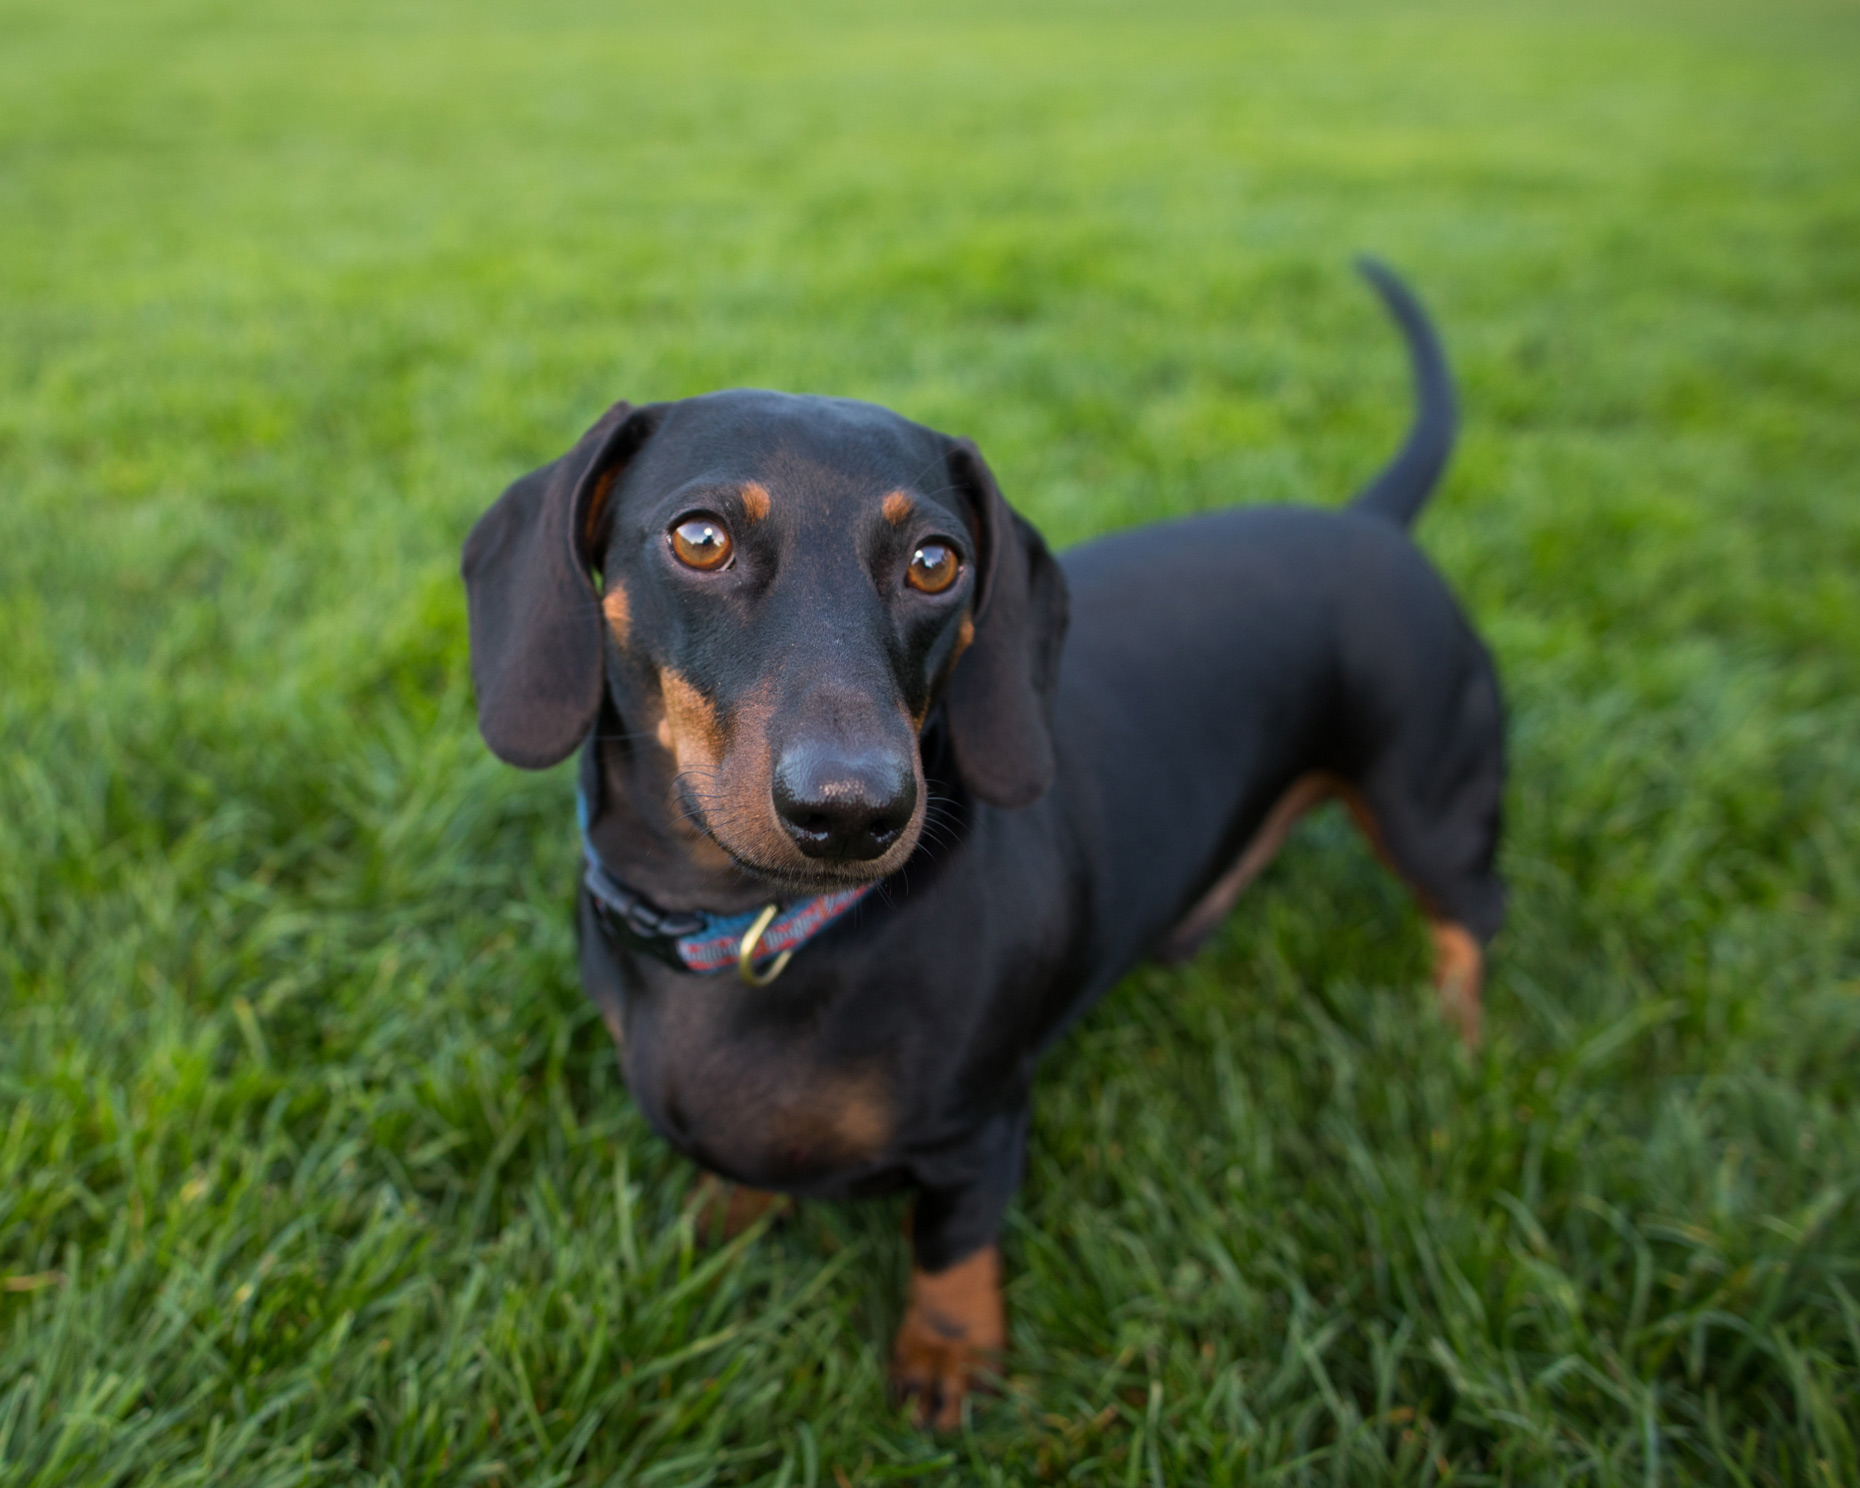 Commercial Photography | Dachshund Looking Up from Grass by Mark Rogers